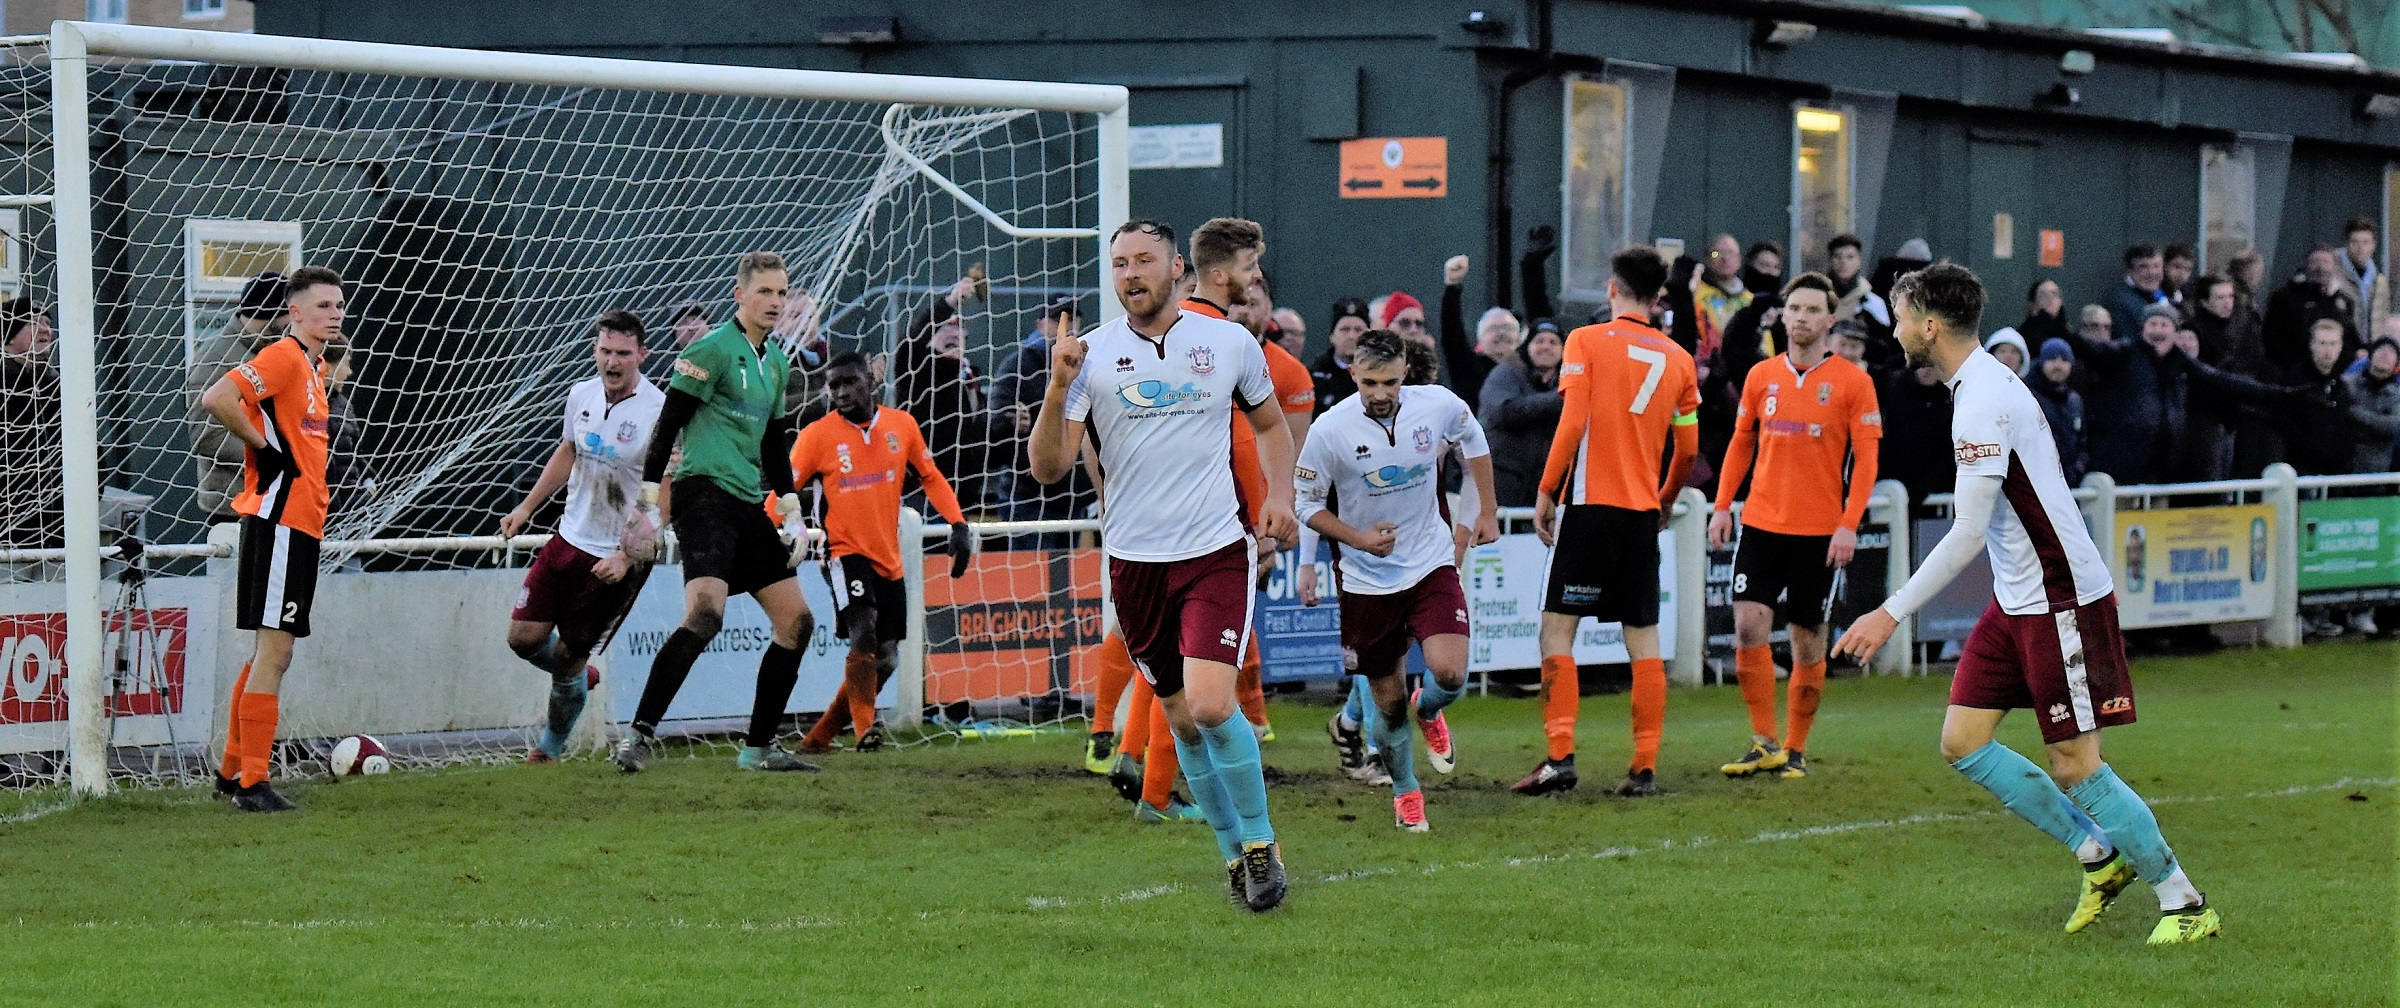 Match Preview: South Shields vs Sunderland RCA, Durham Challenge Cup